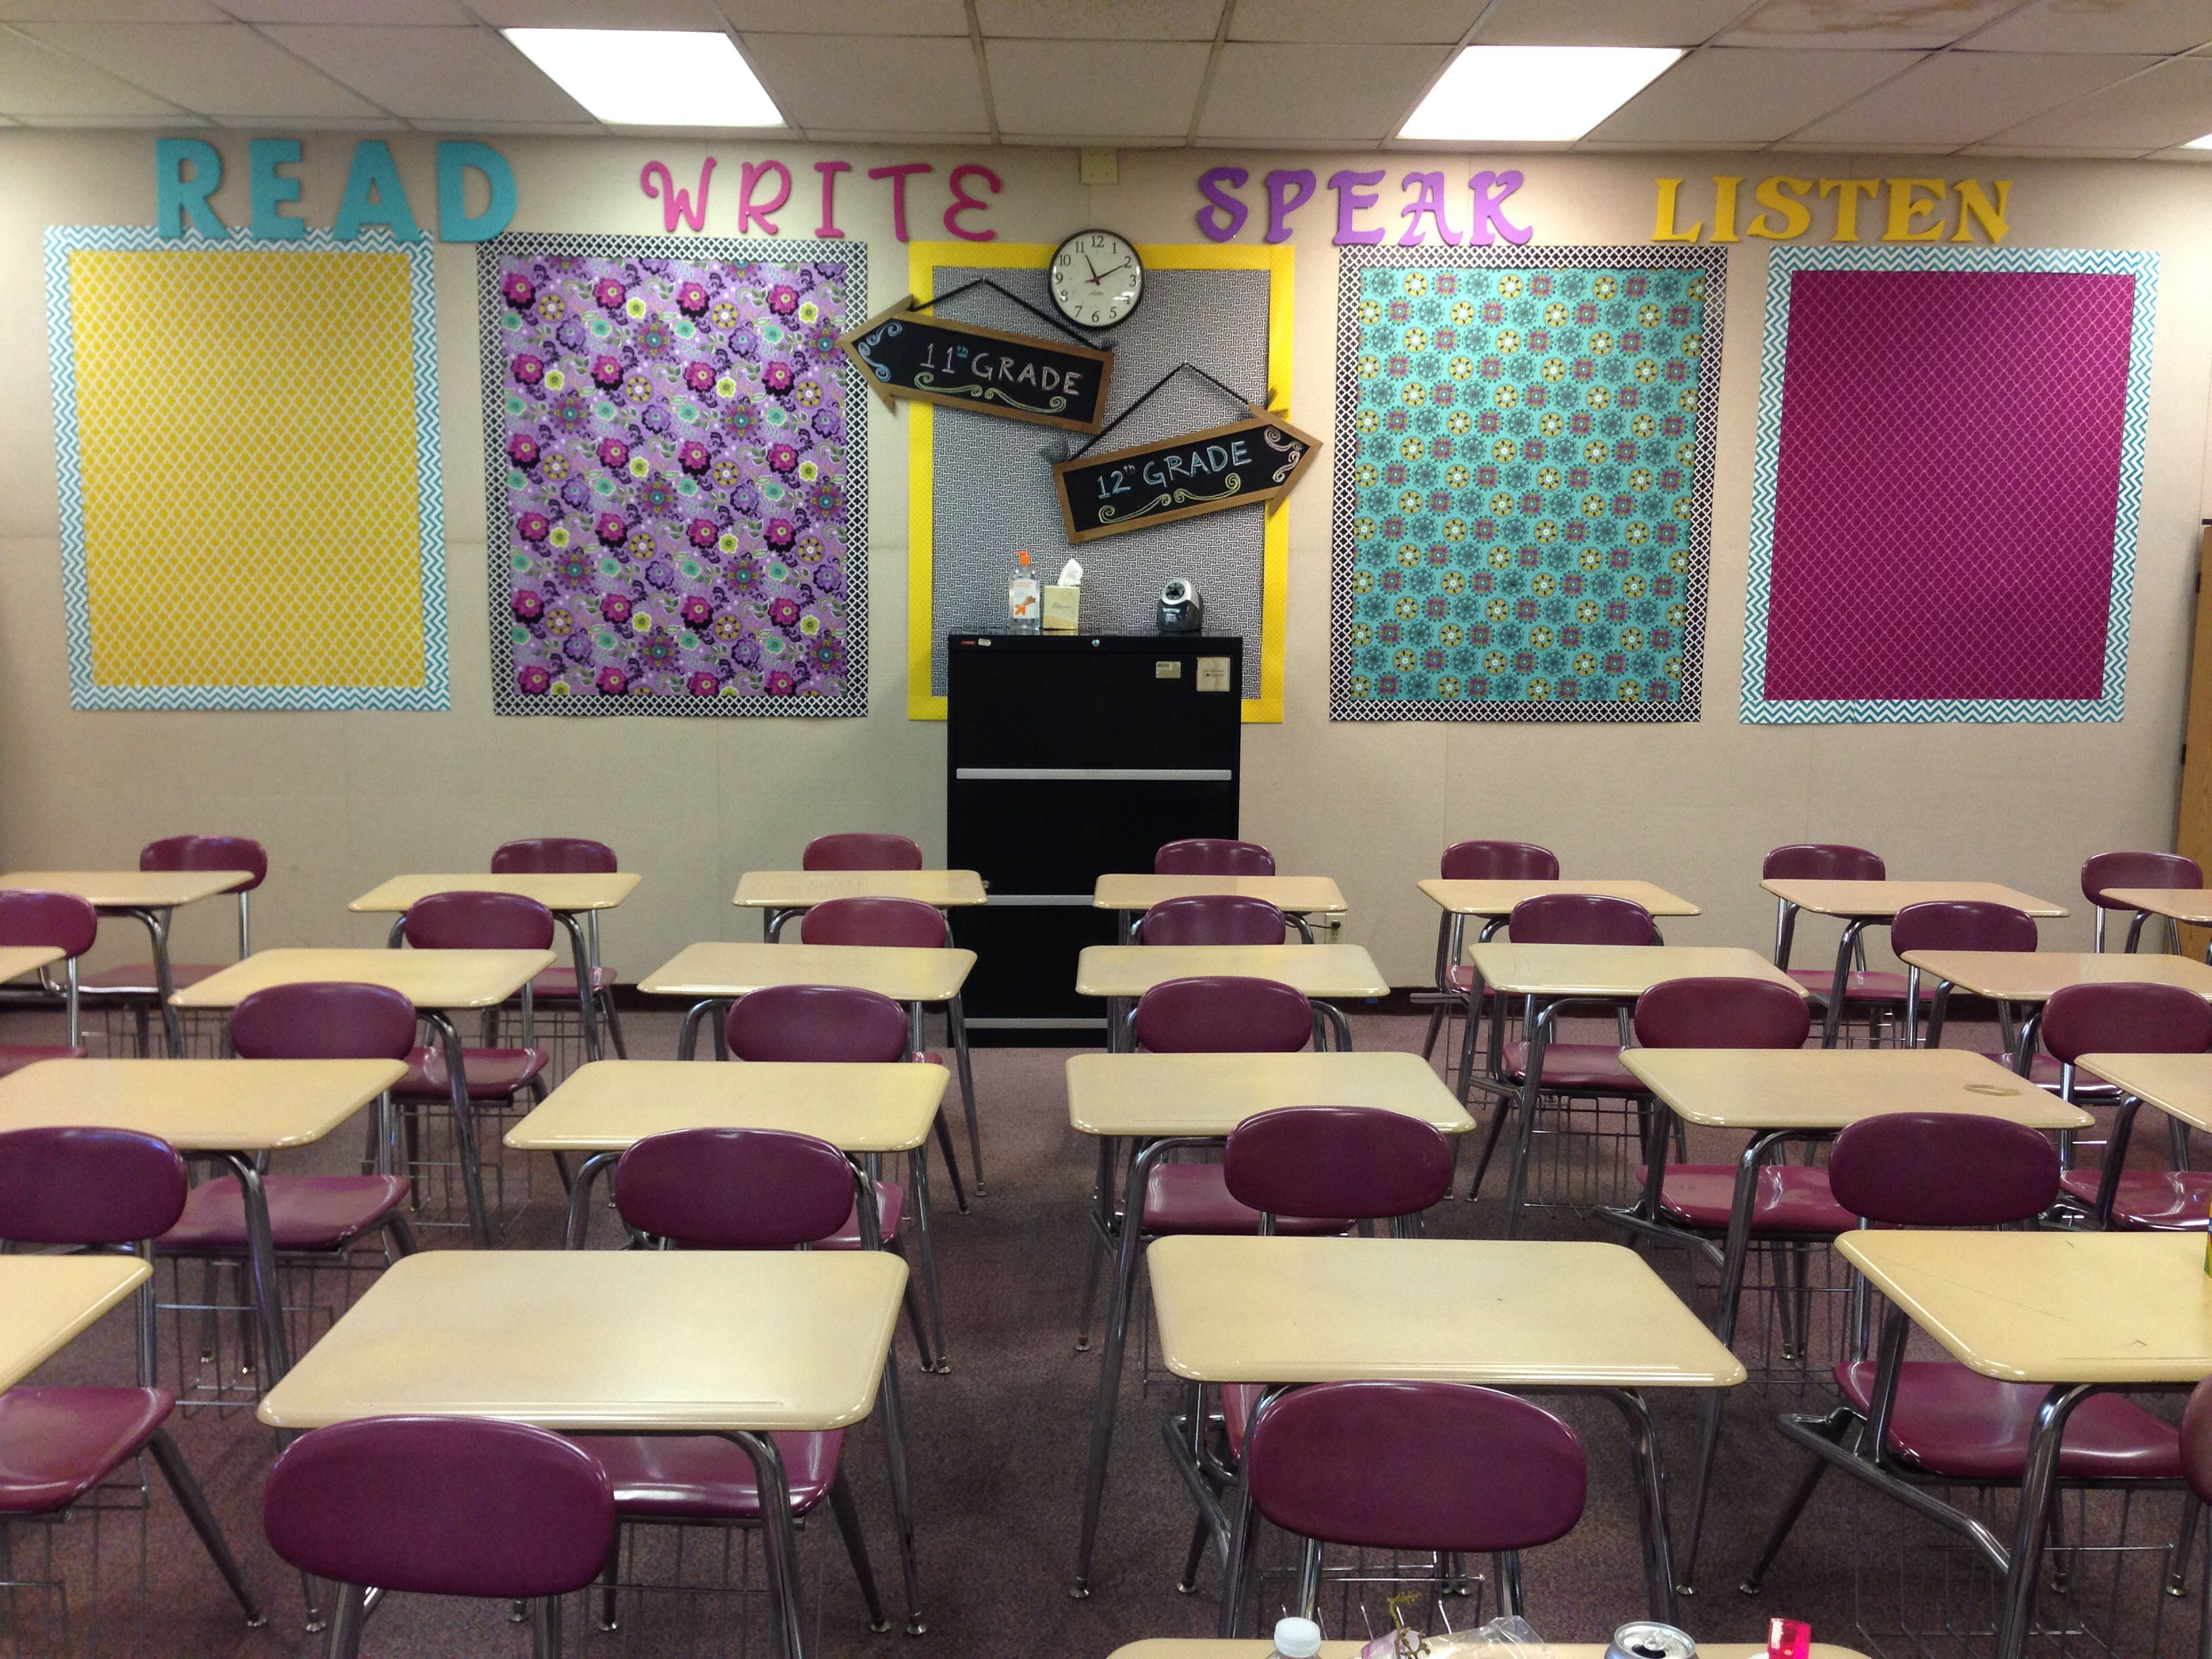 Classroom Decoration English ~ High school english classroom decor read write speak